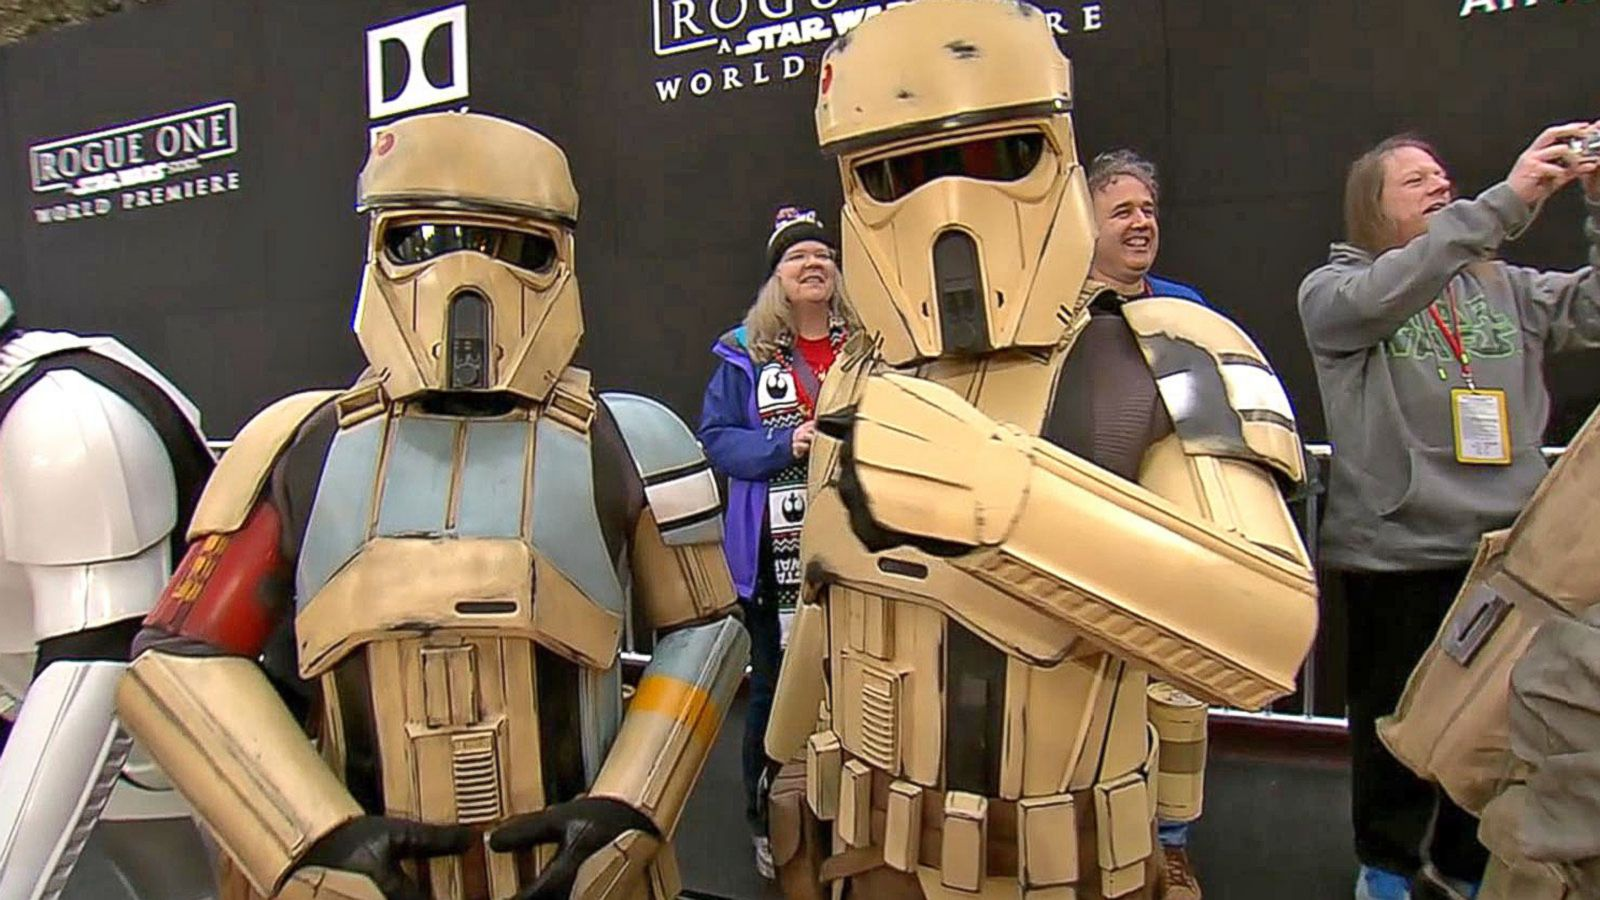 VIDEO: 'Rogue One' Premiere Night Highlights